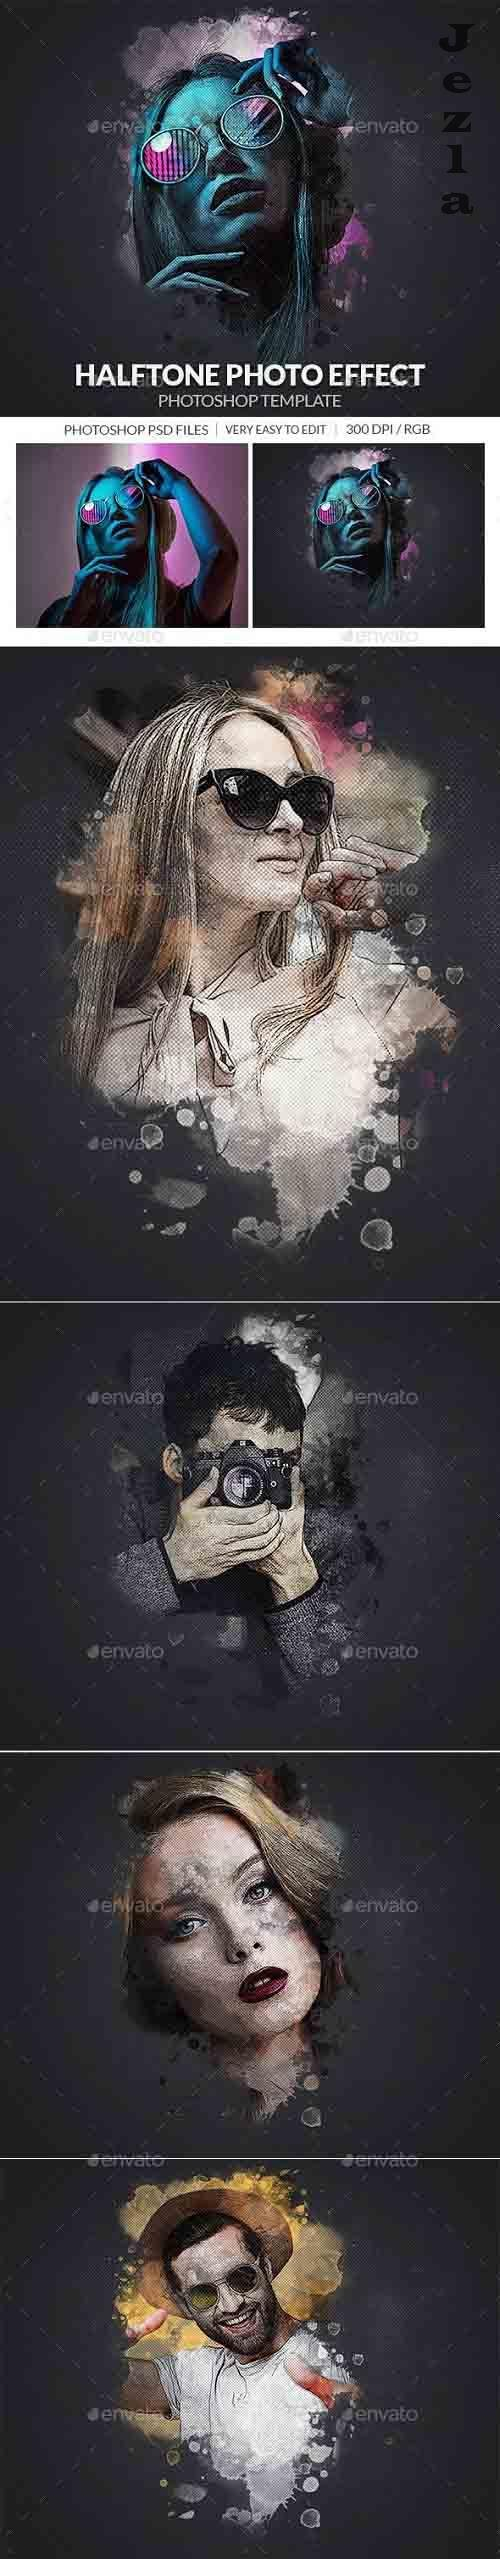 Halftone Photo Effect Template - 30386664